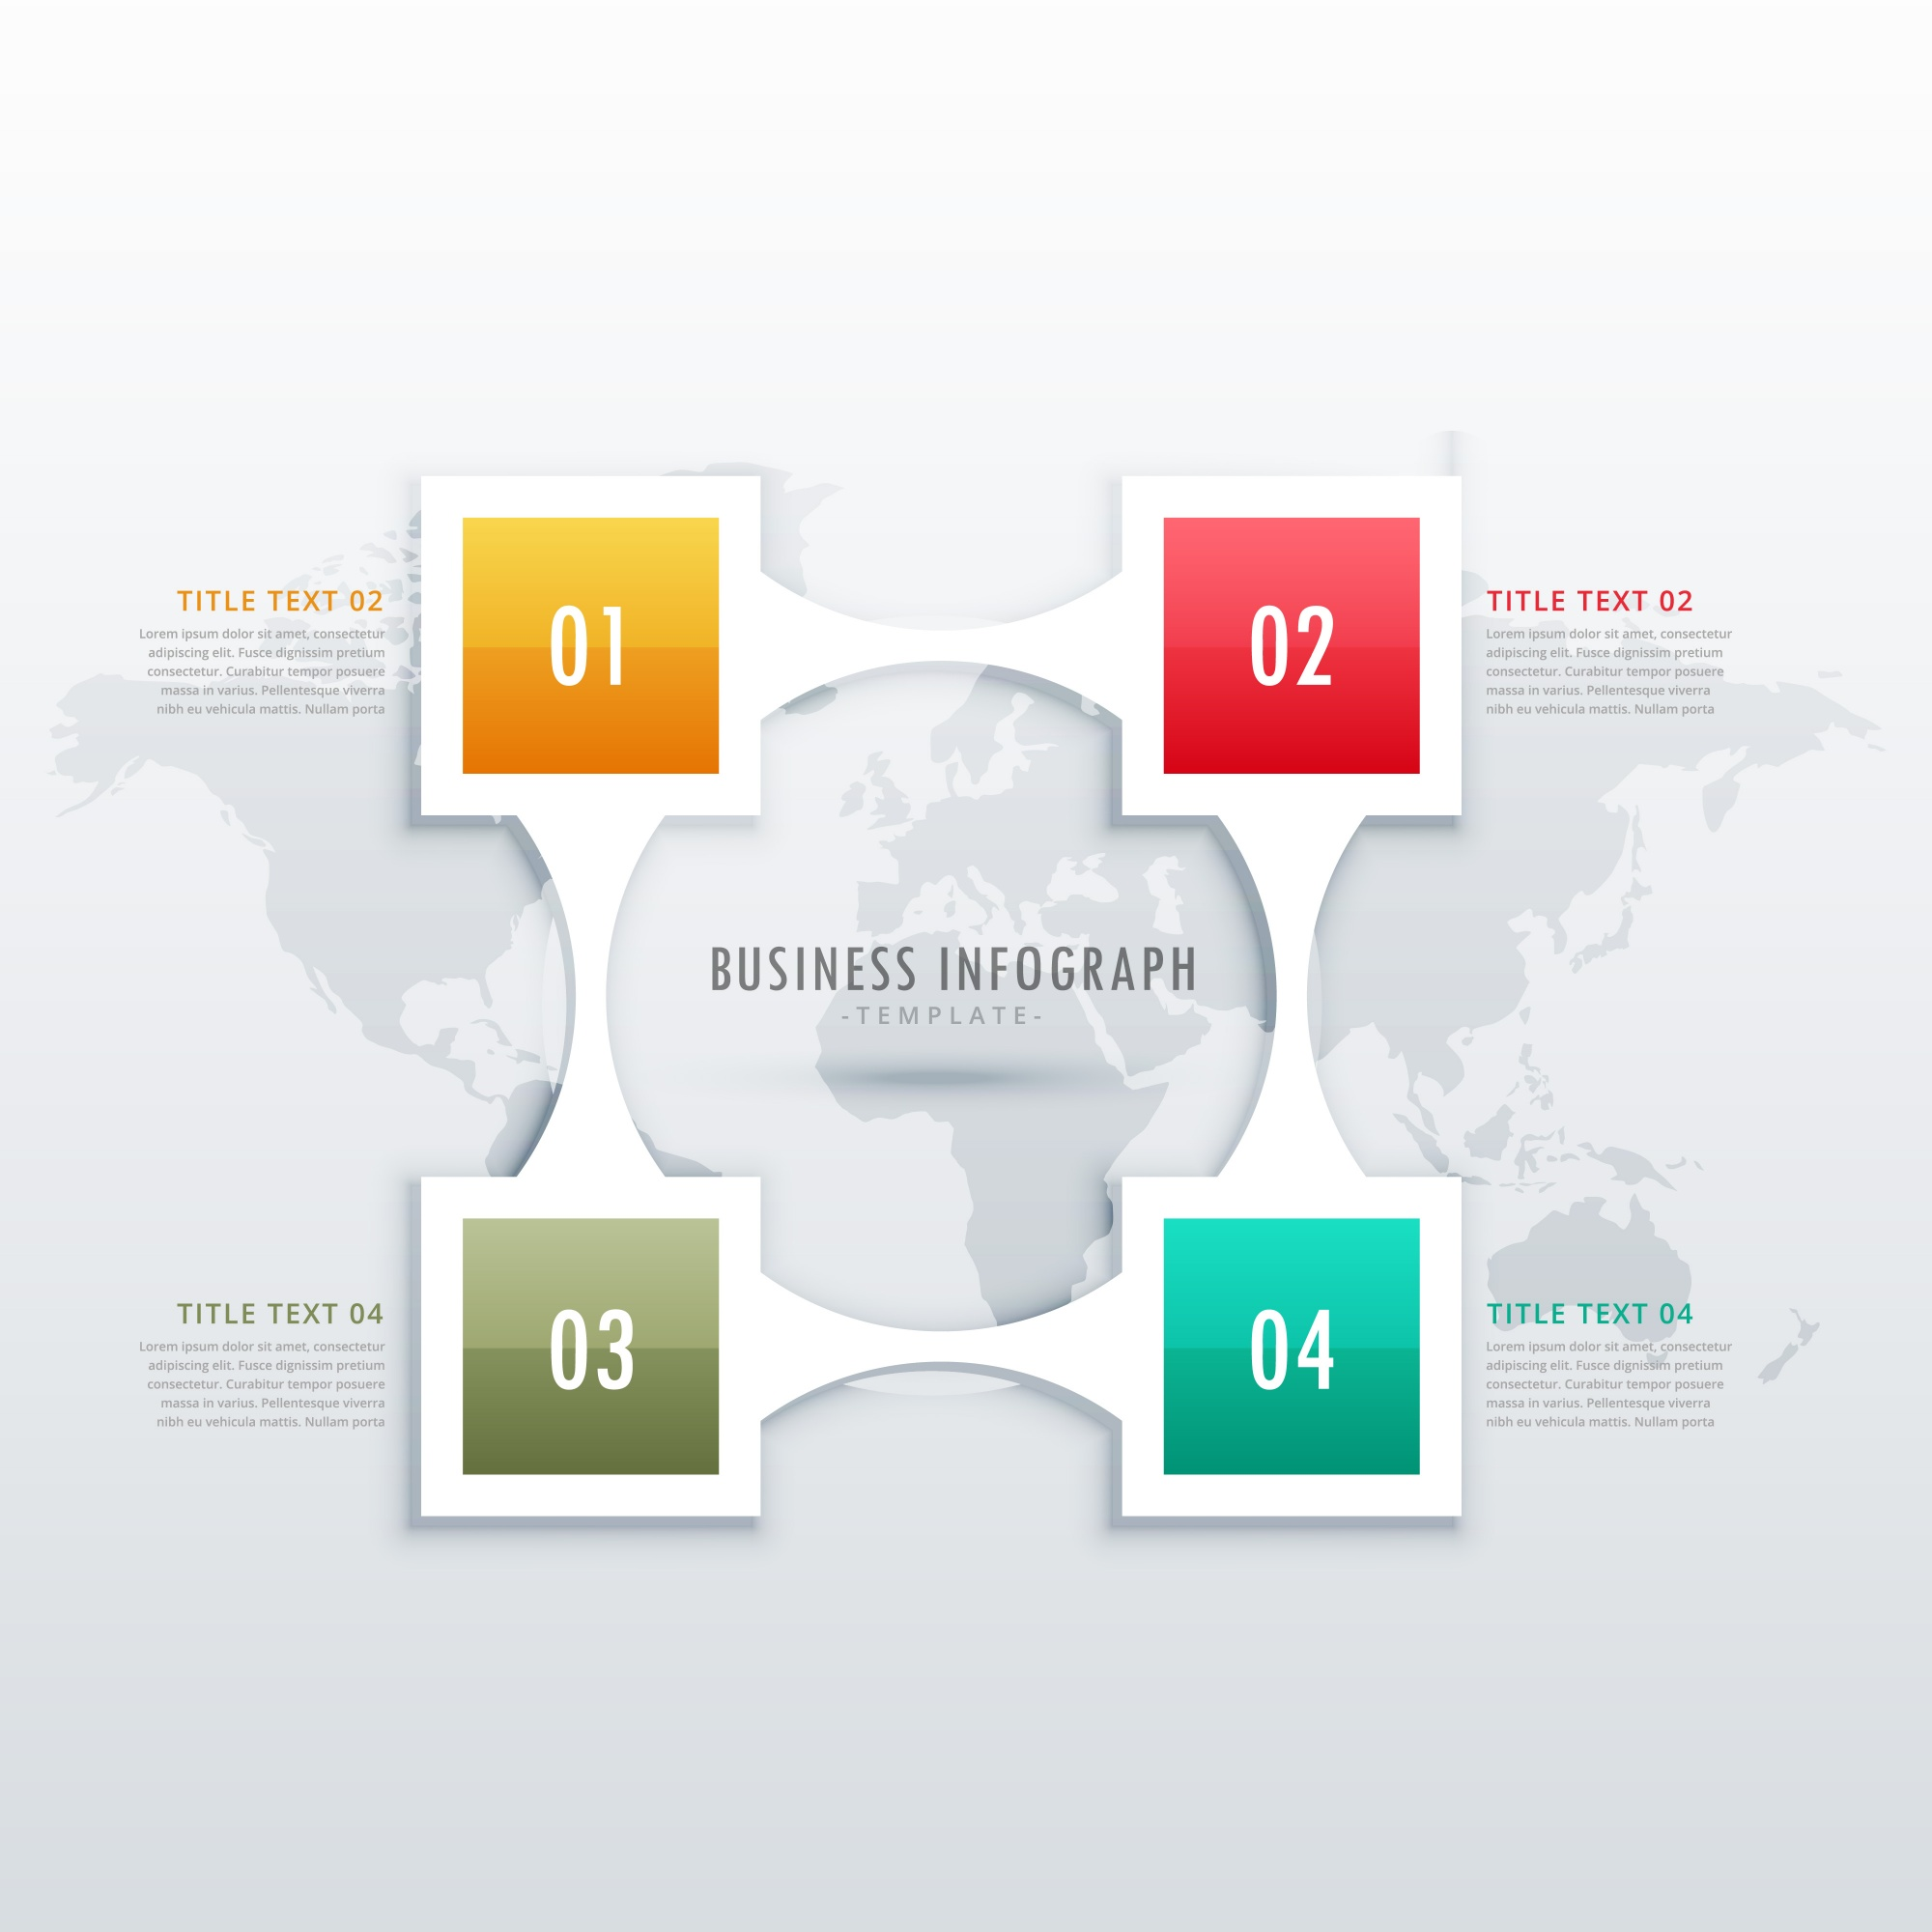 Creative four steps infographic template for business presentation or workflow diagrams